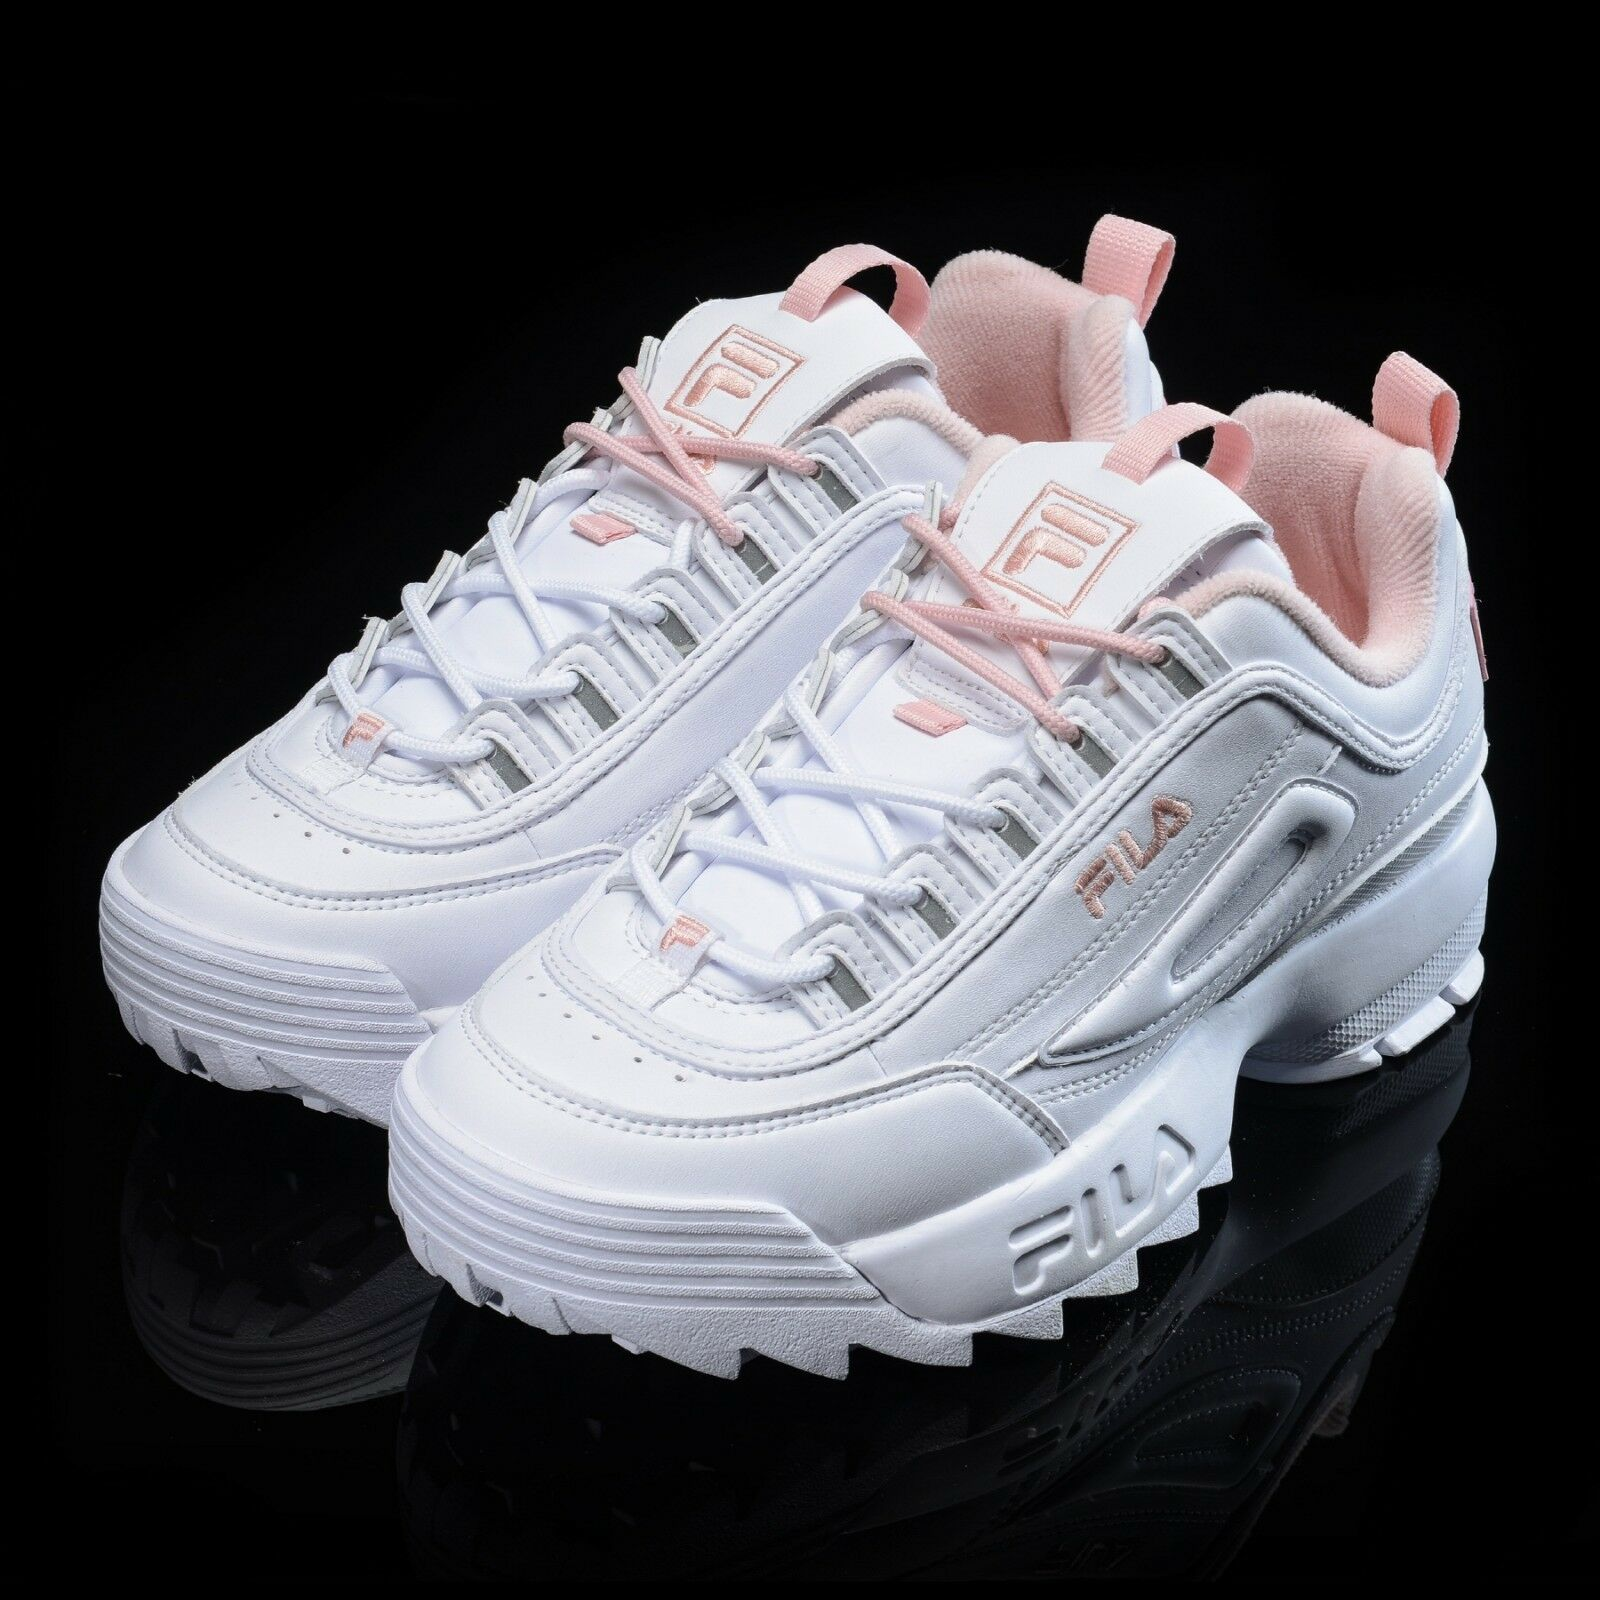 2018 FILA Disruptor II 2 White/Pink Shoes Unisex Comfortable Wild casual shoes